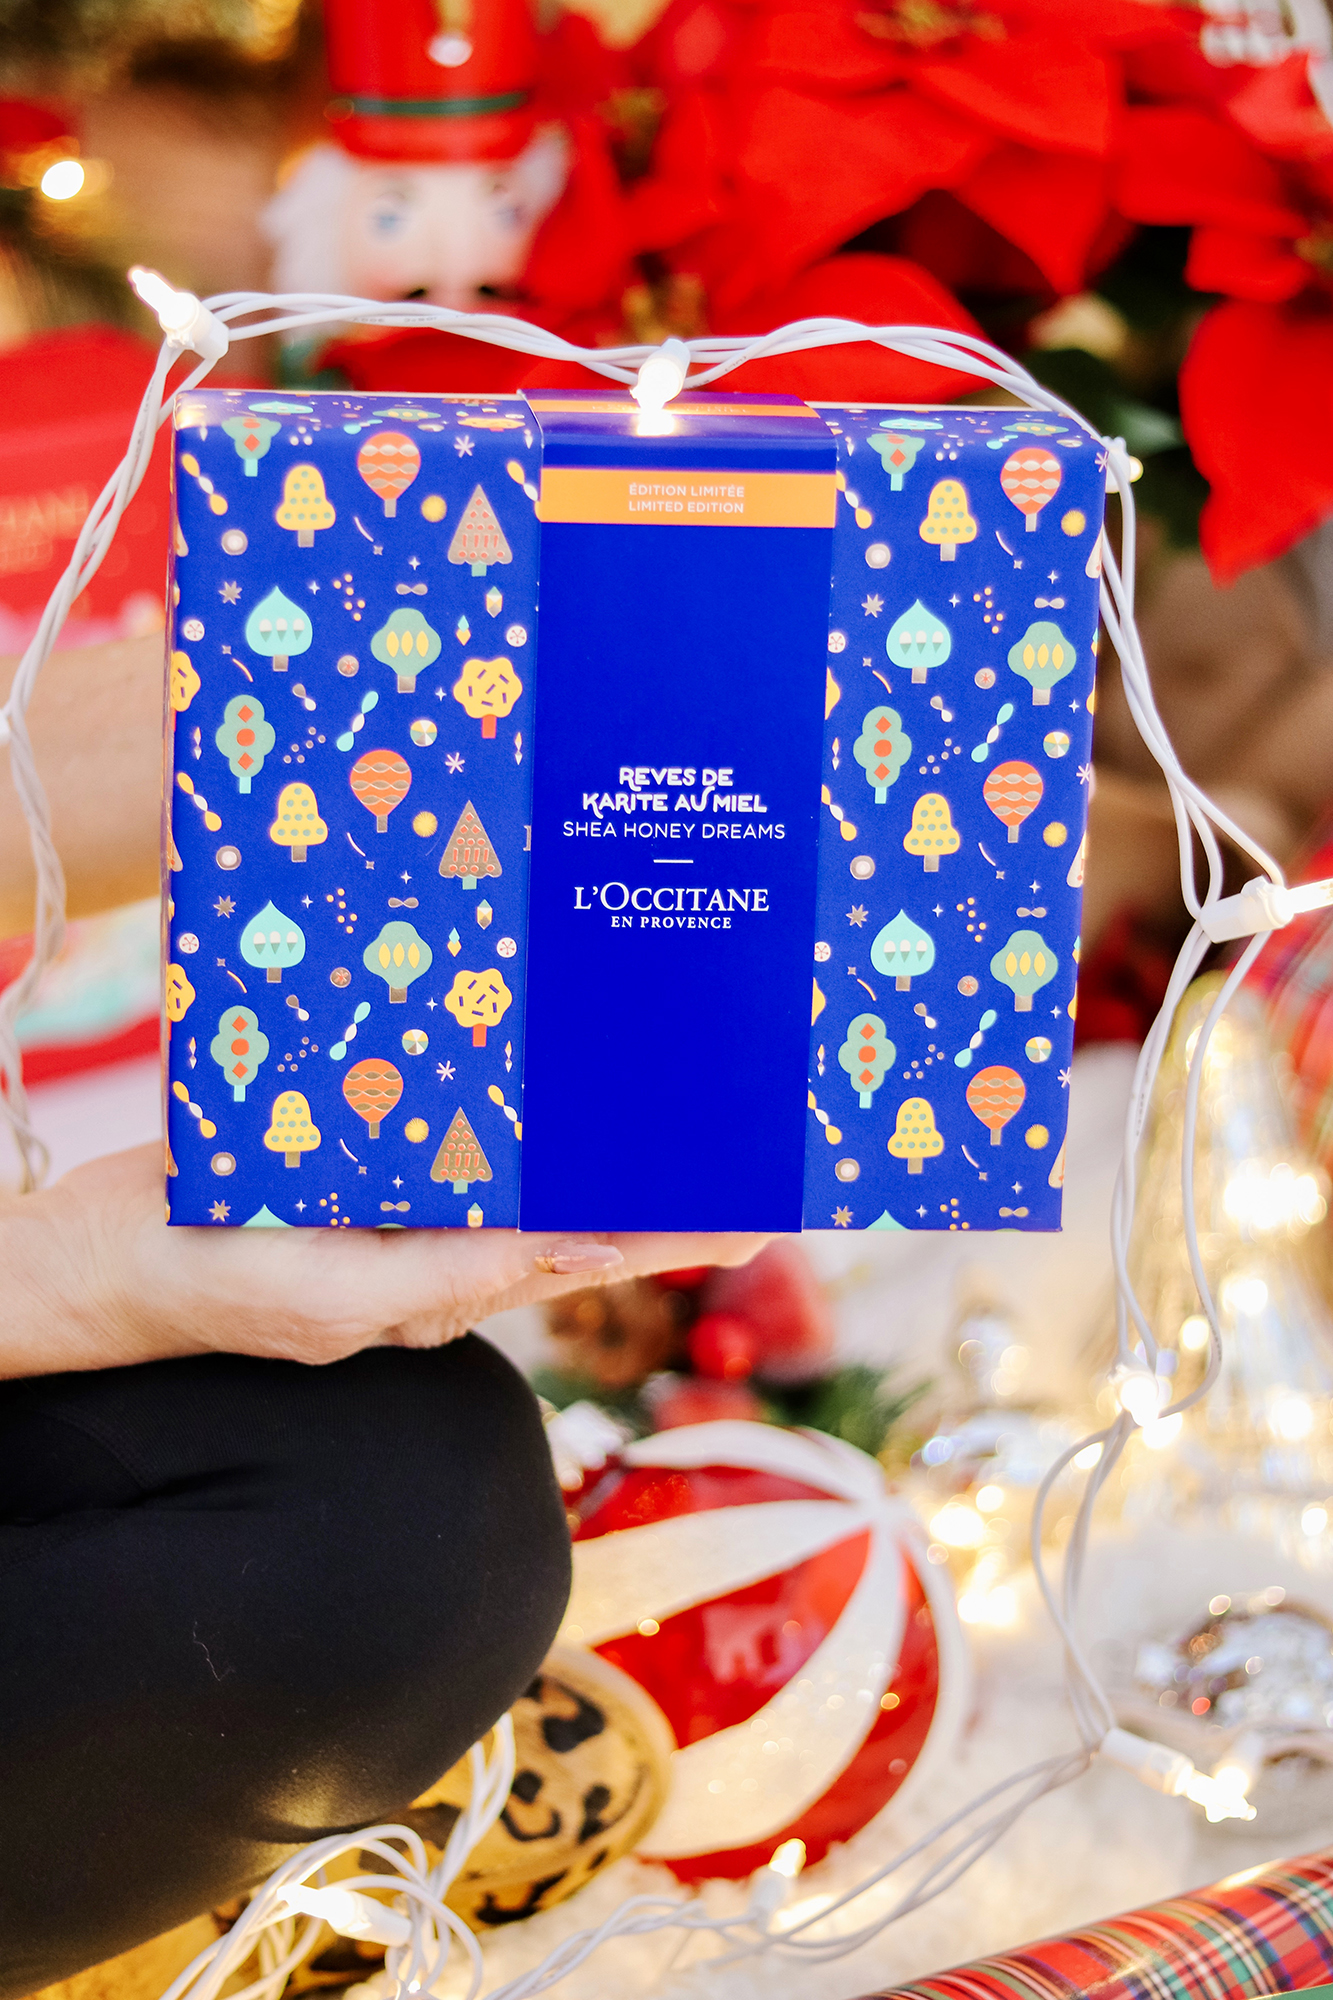 L'Occitane Holiday Beauty Gift Set Guide 2019 - Affordable & on-sale beauty gifts from the French company L'Occitane! All so beautiful.